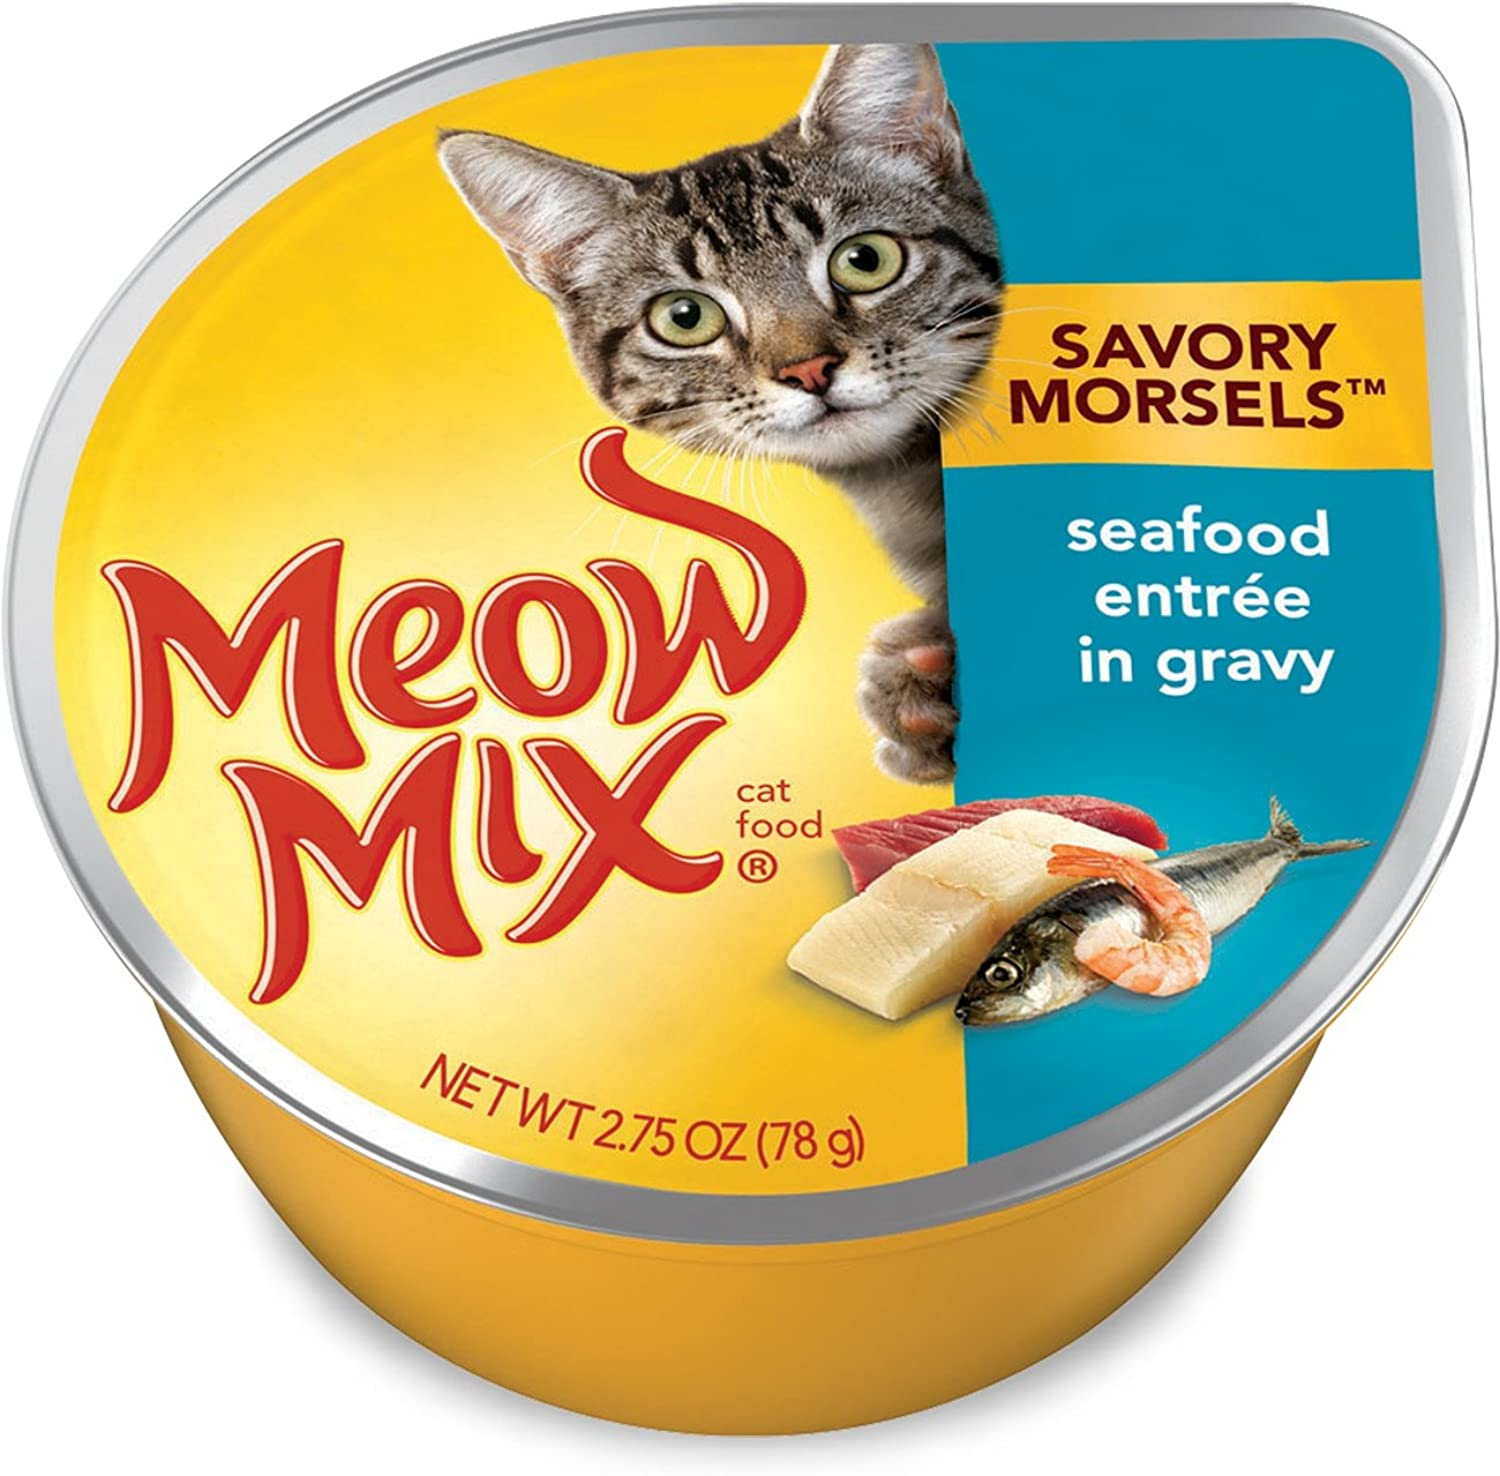 Meow Mix Savory Morsels Seafood Entrée Wet Cat Food, 2.75 Oz (Pack of 12)